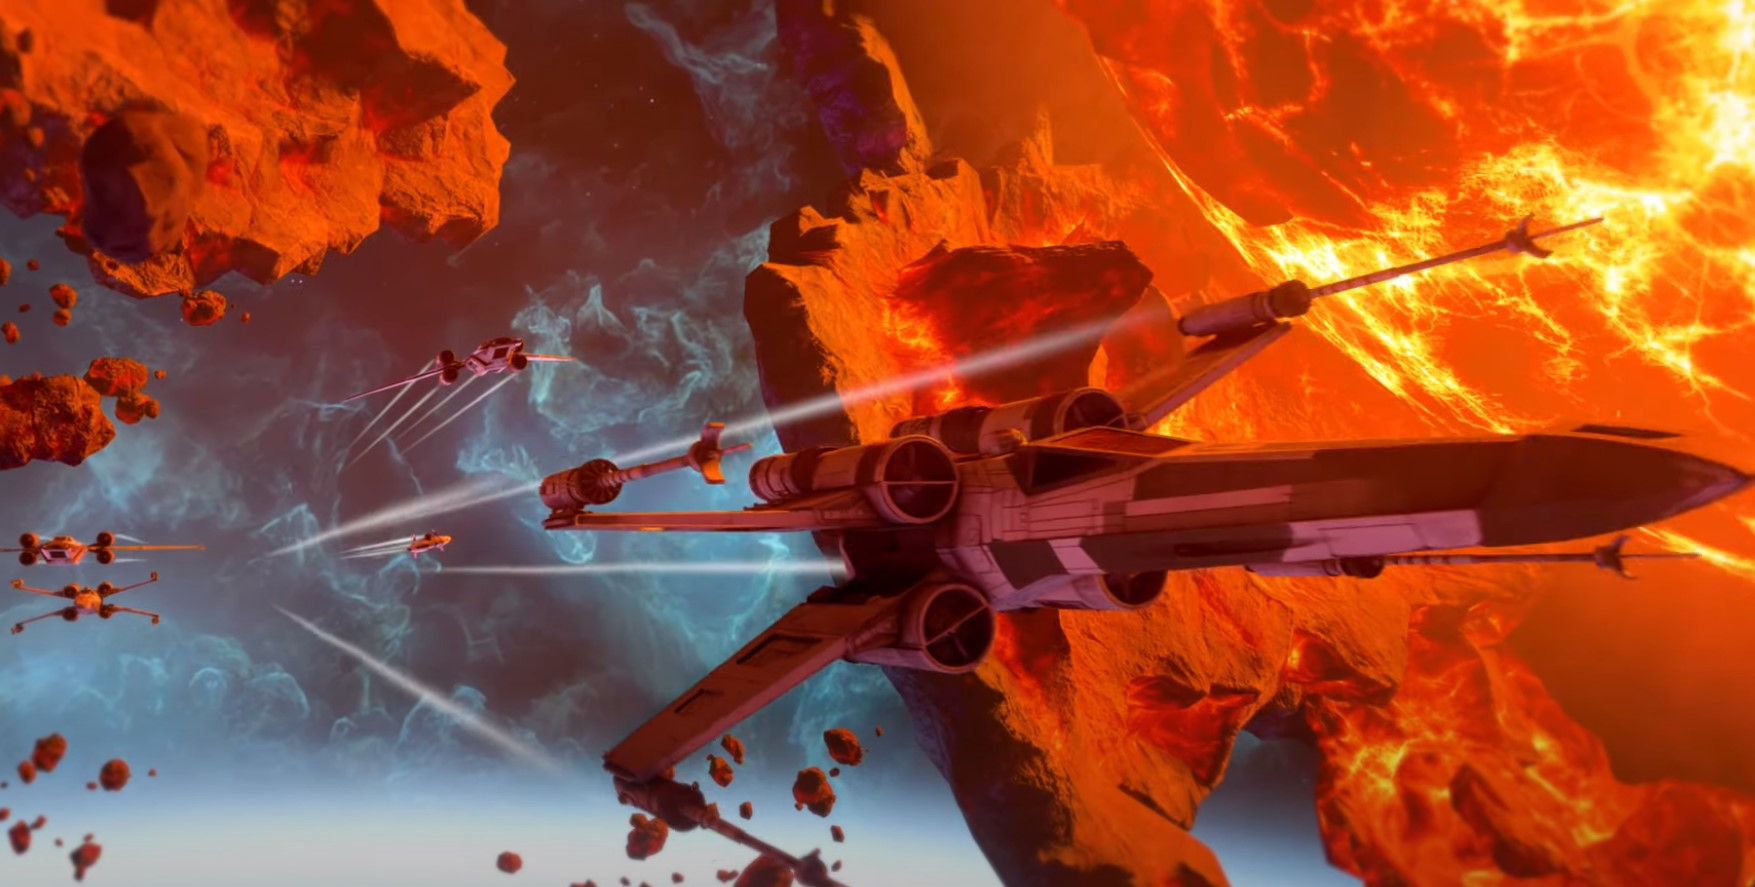 EA isn't slowing down on Star Wars games despite losing exclusivity, CEO says